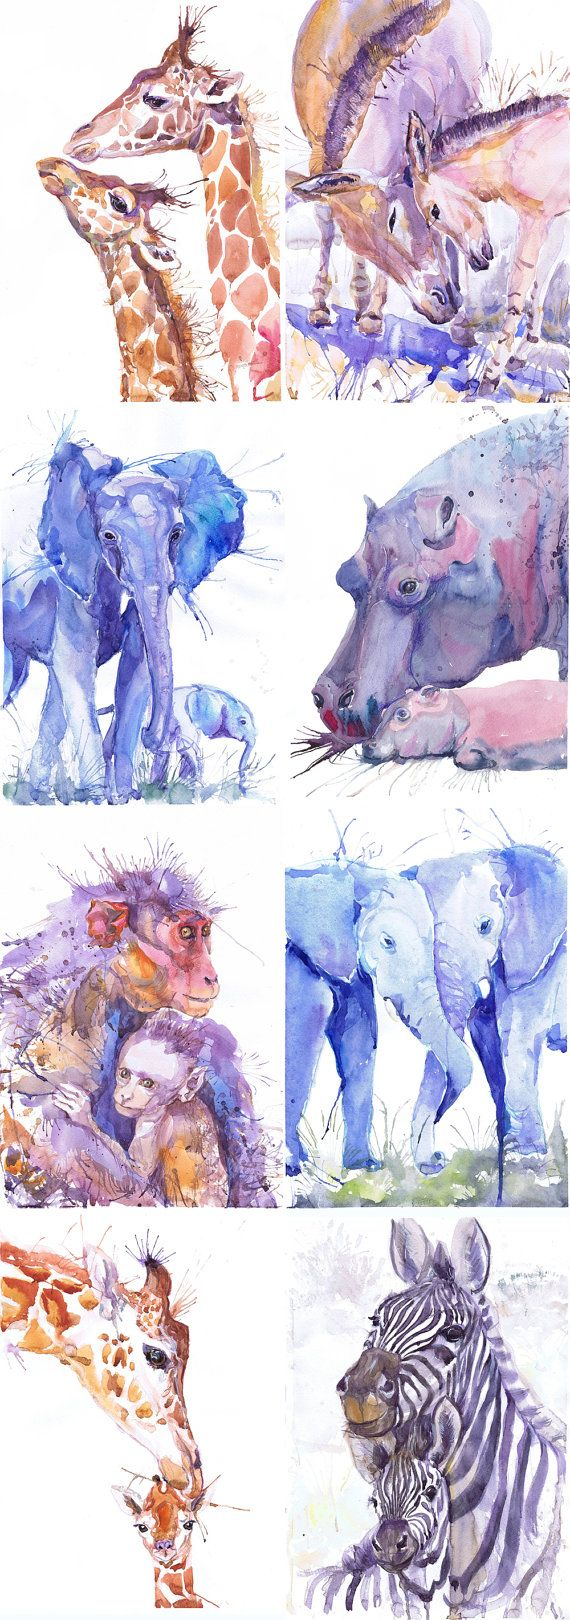 ACEO Artist Trading Cards Art Prints Watercolor Painting Jungle Safari Animals ATC Giclee, Set of 8 Signed Collectible card Watercolour Set of 8 Signed More